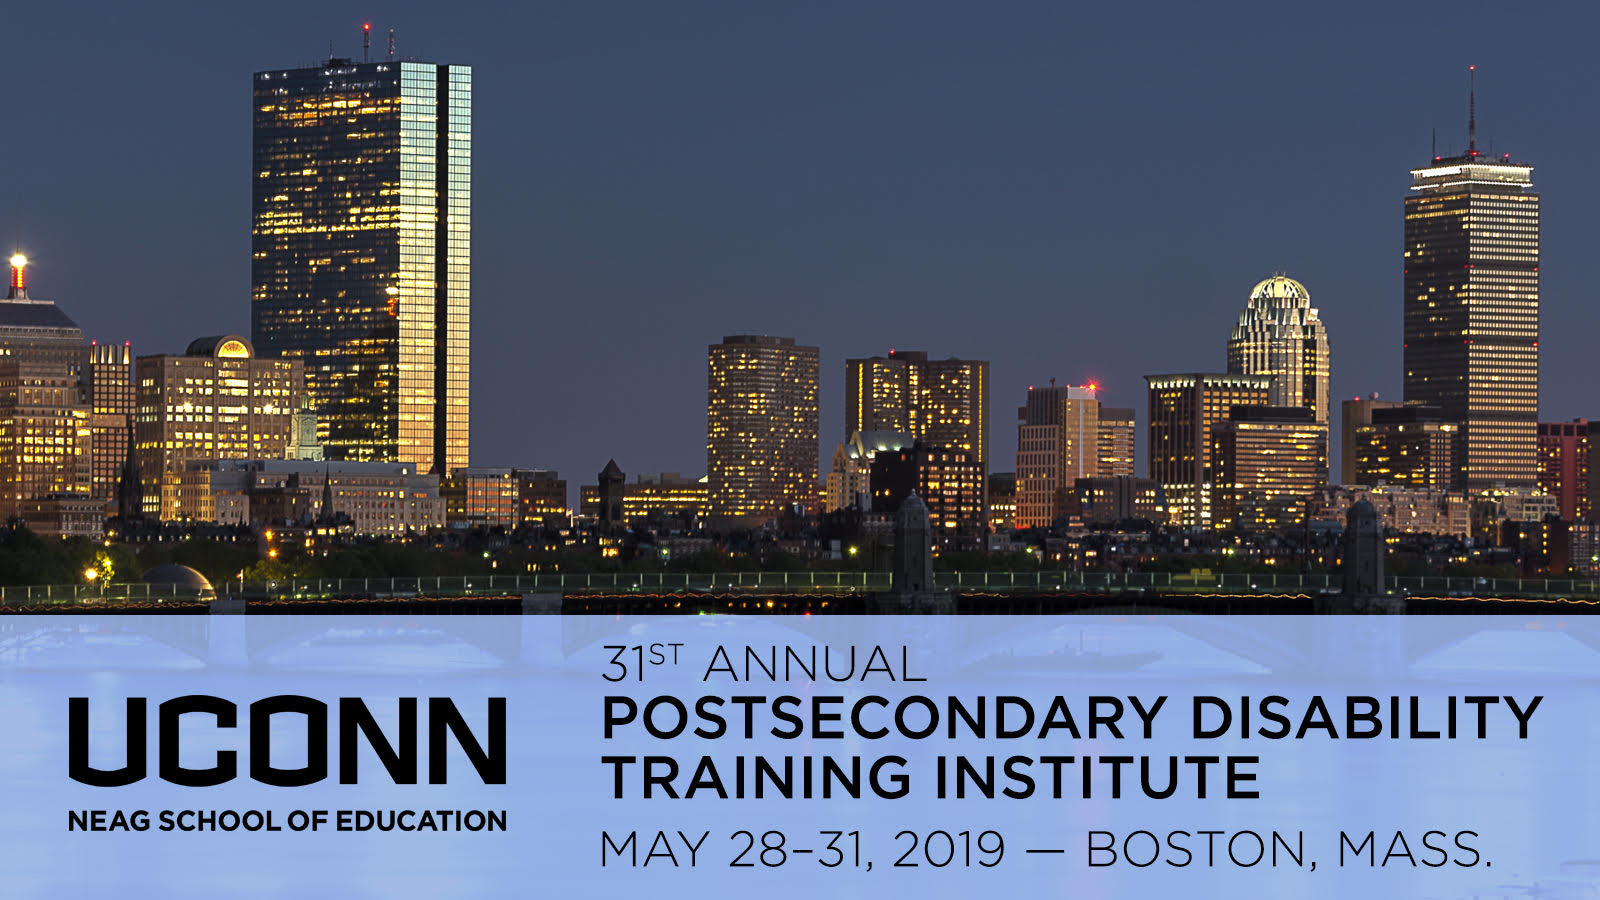 Postsecondary Training Conference